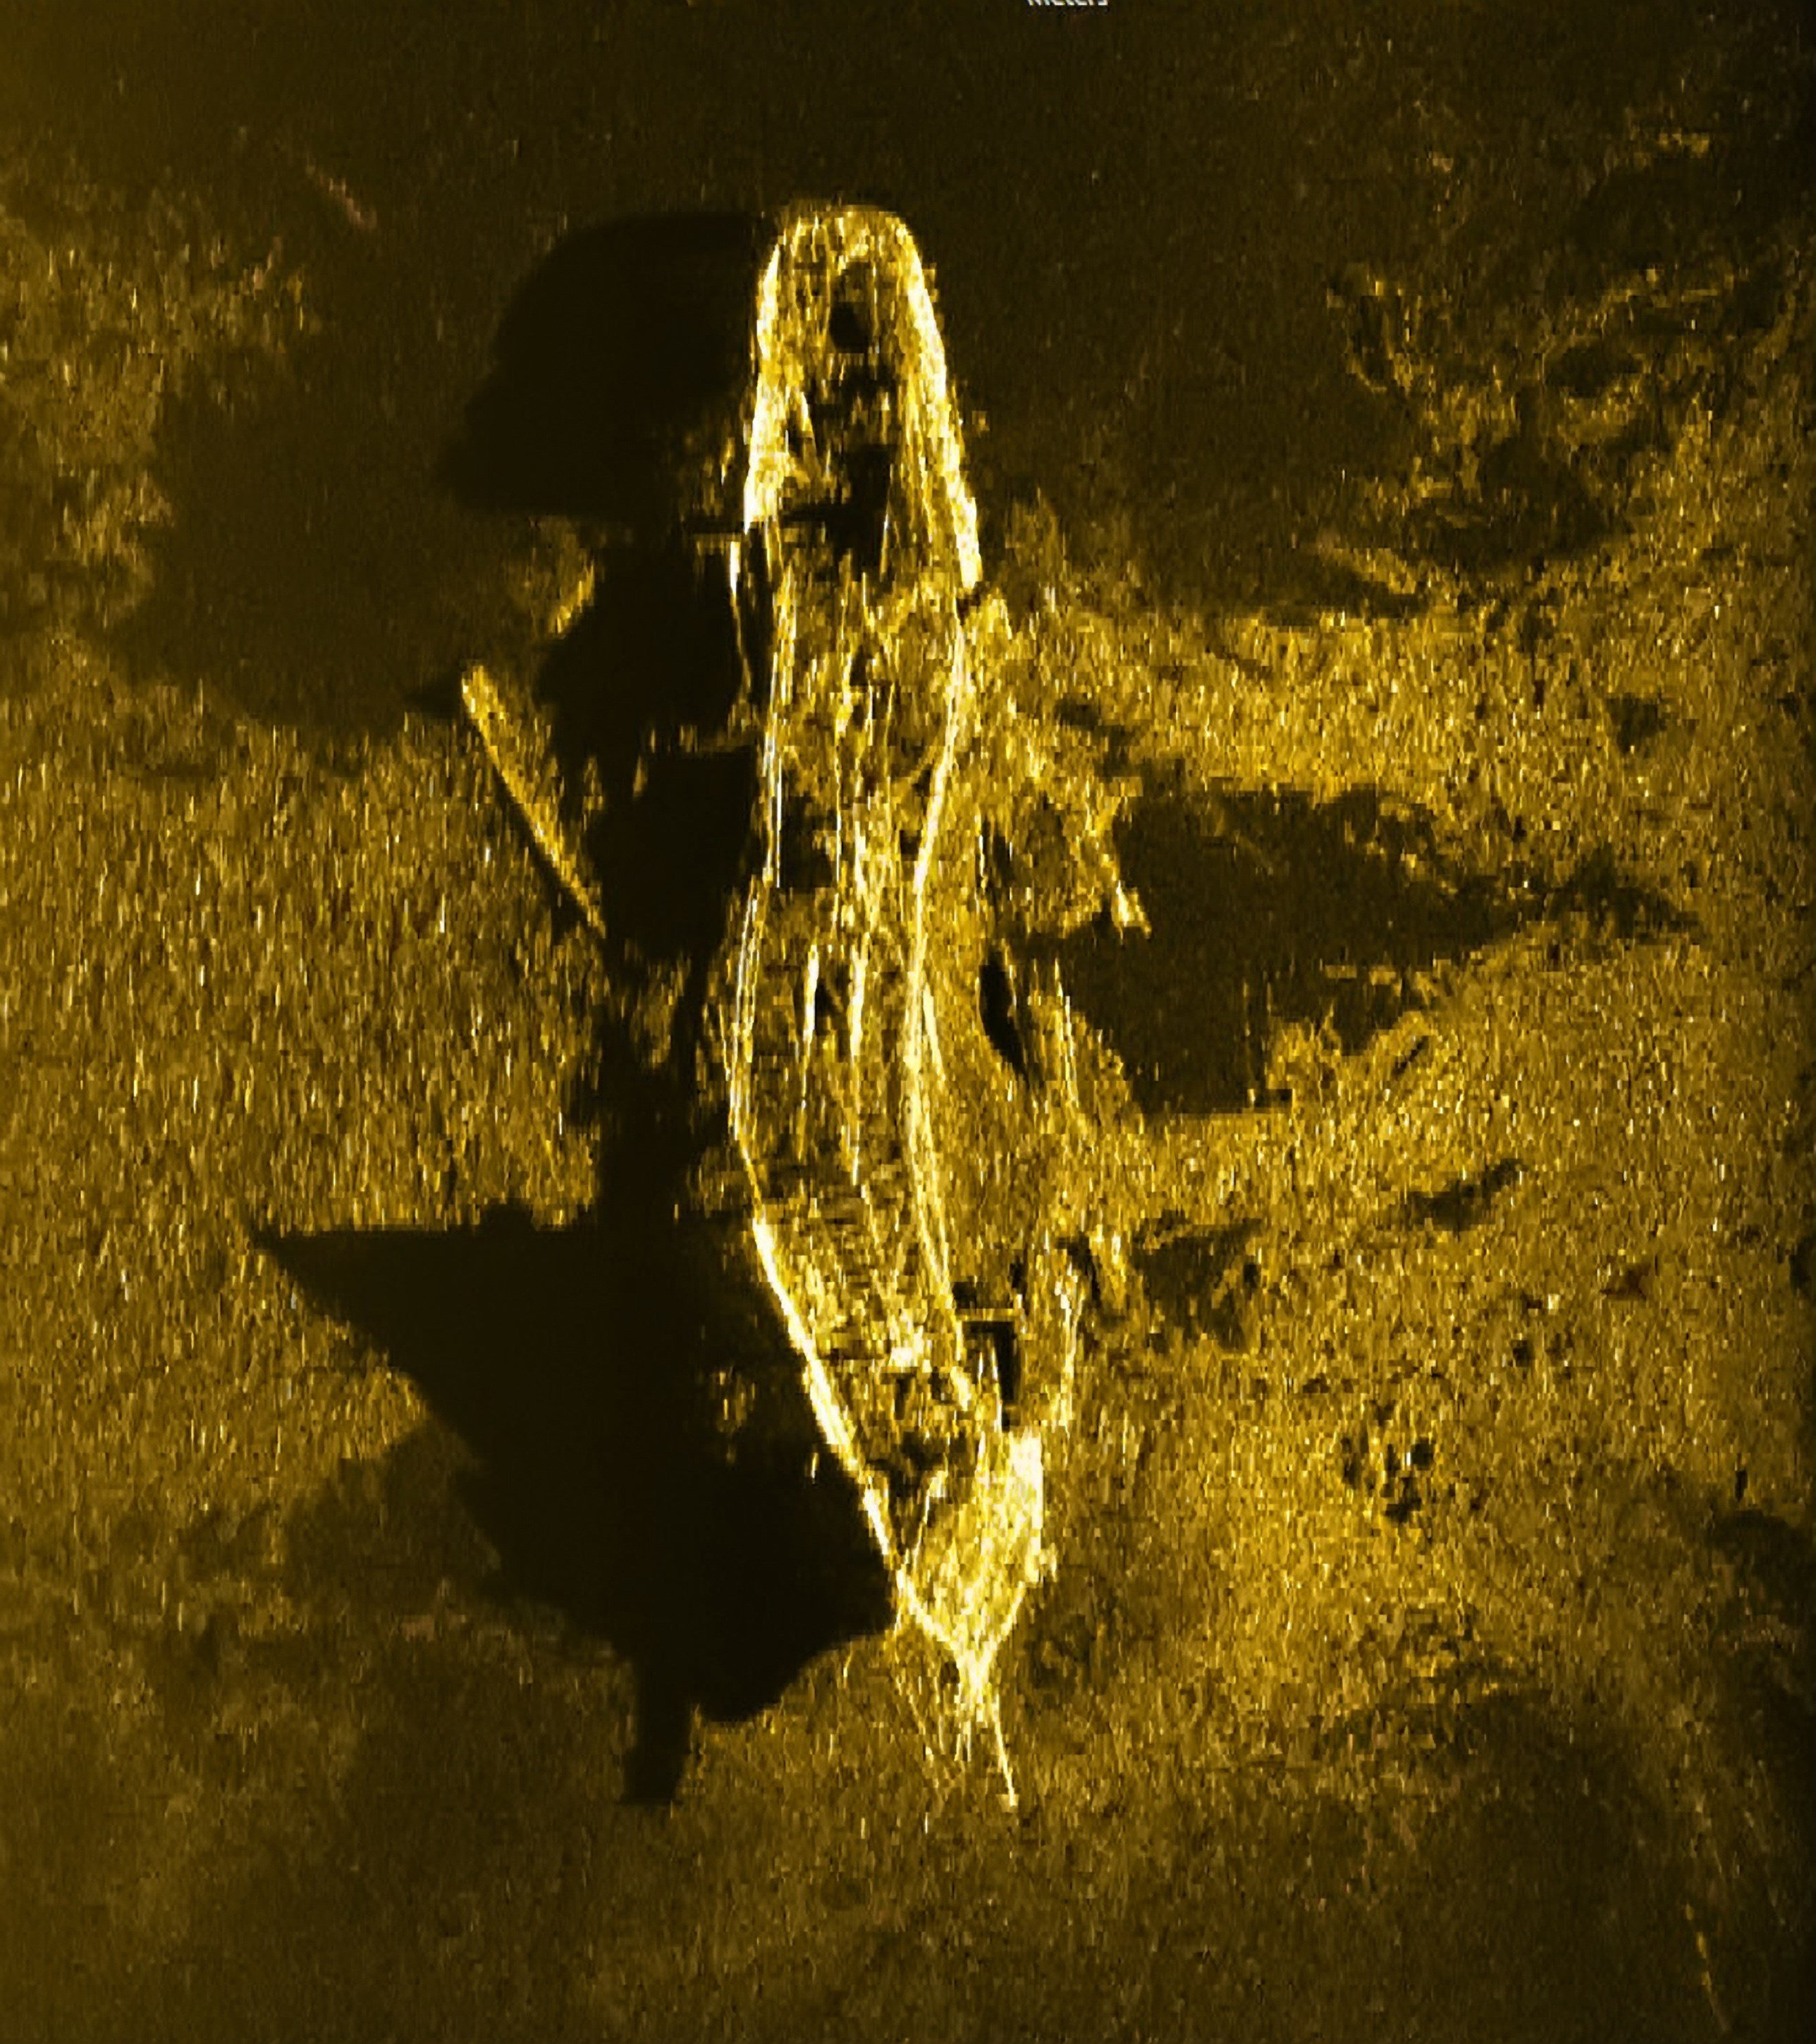 An iron or steel-hulled shipwreck some 3,700 meters below the surface and believed to have gone down at the turn of the 19th century.